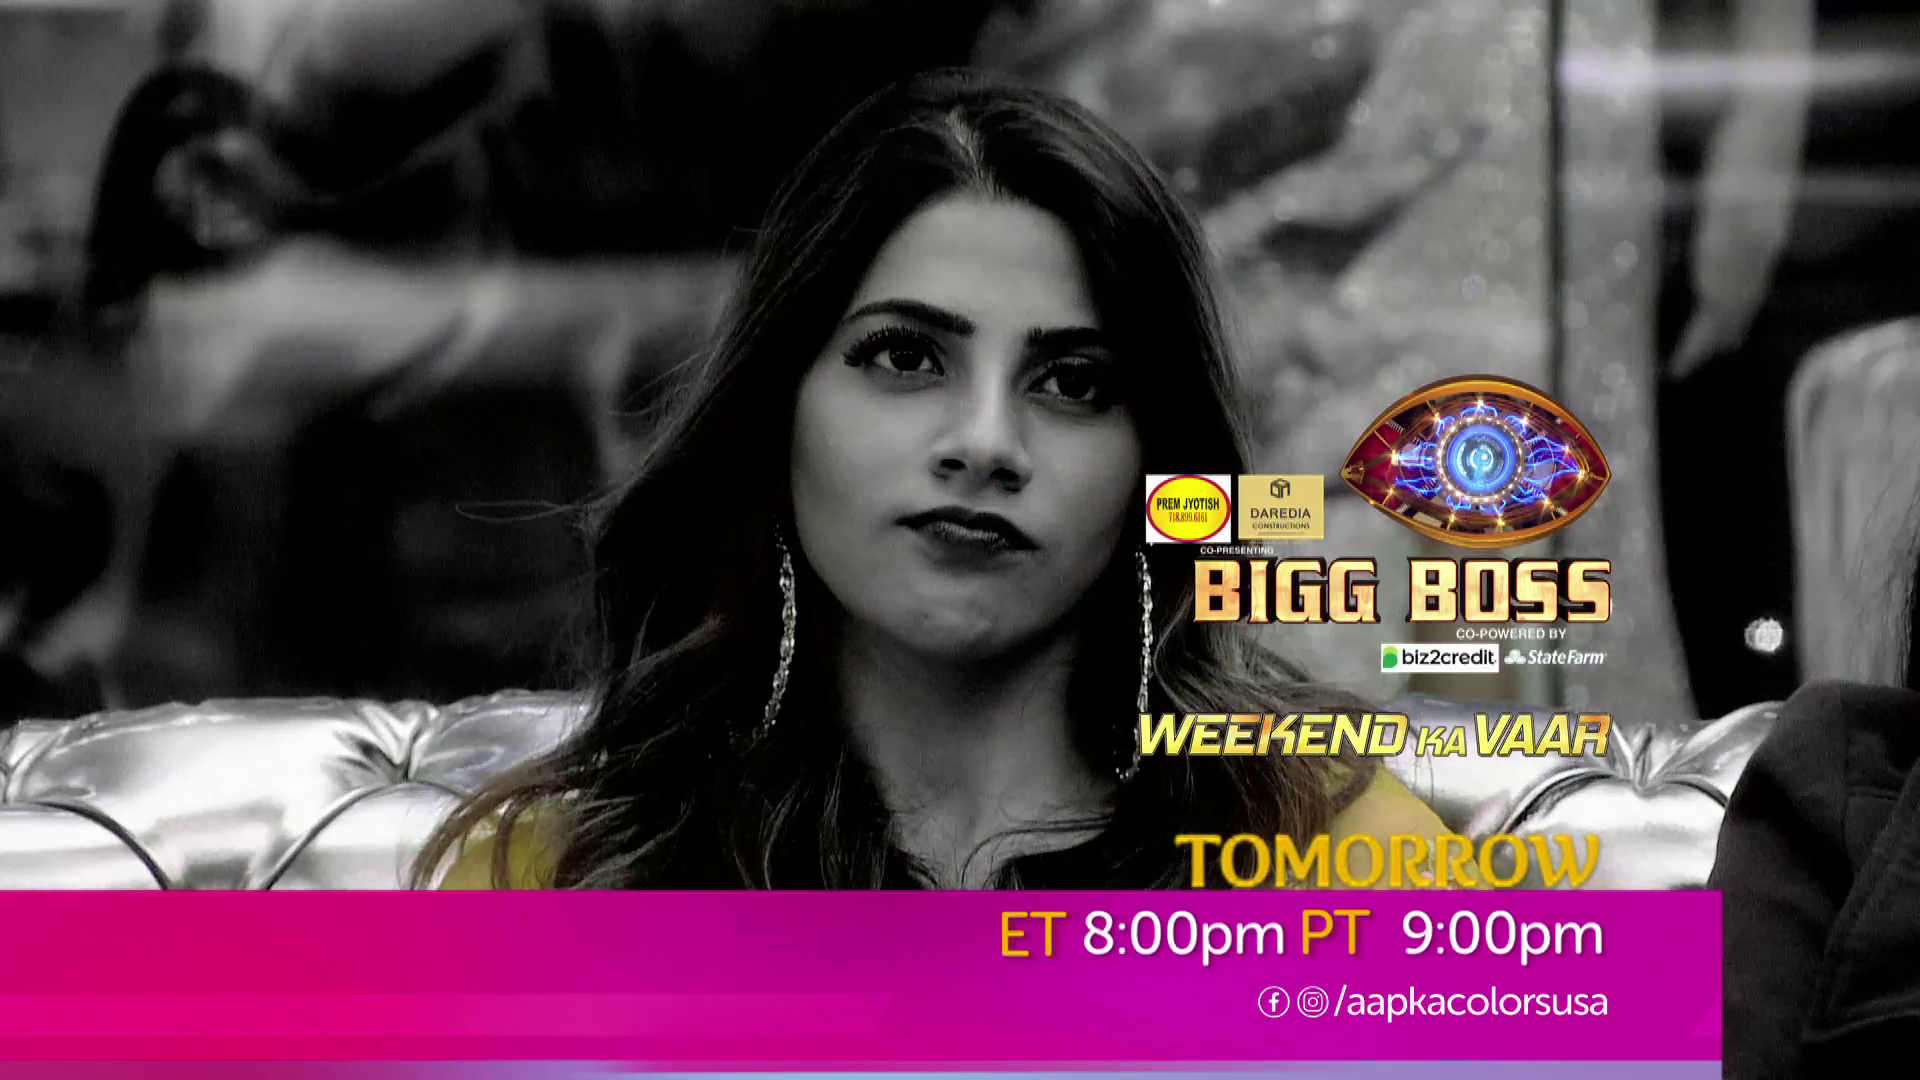 Watch Bigg Boss 14 Weekend Ka Vaar Sat-Sun 8 PM ET/ 9 PM PT